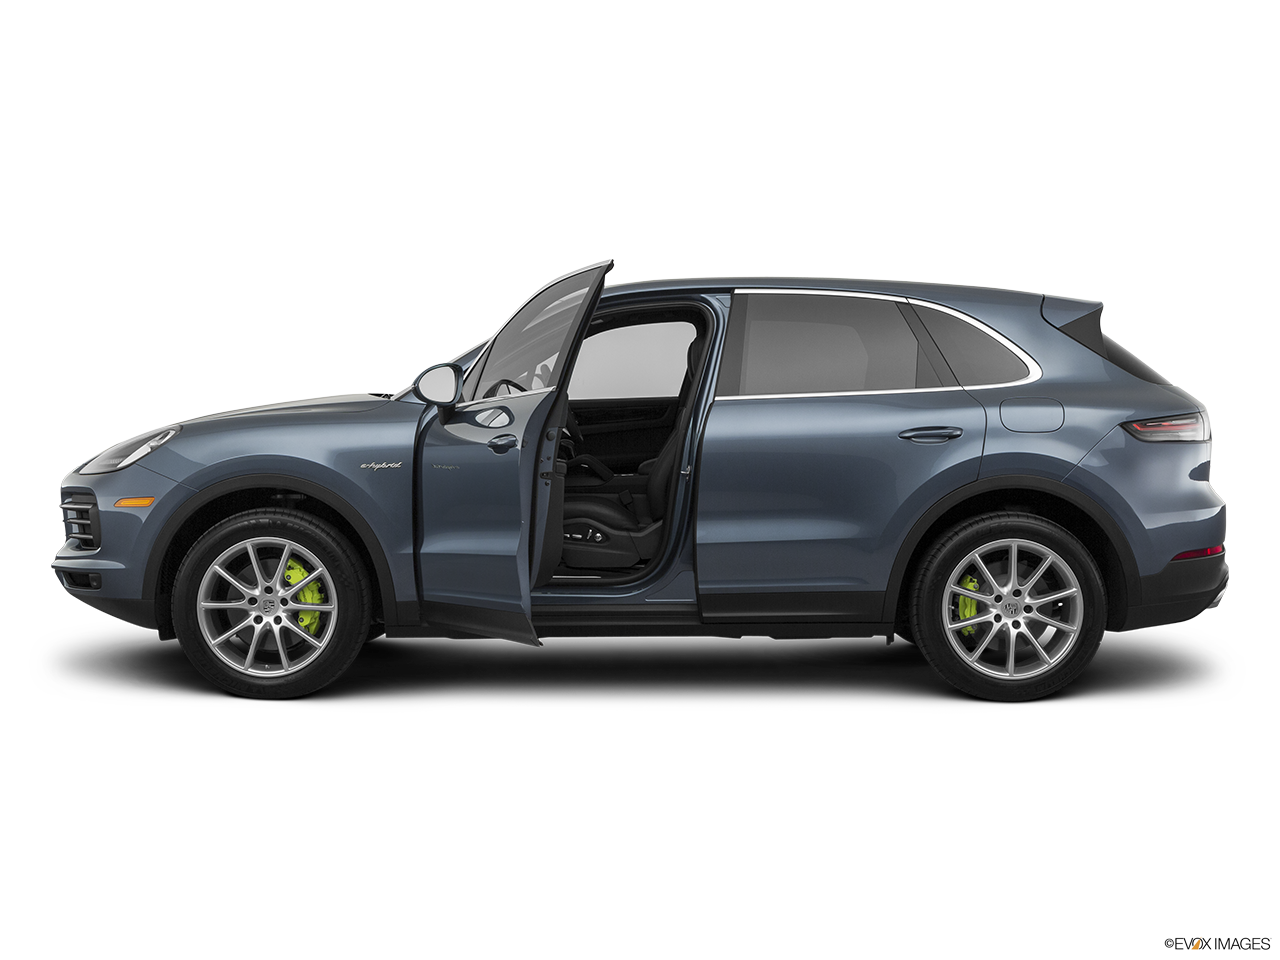 Side view of the Porsche Cayenne S E Hybrid